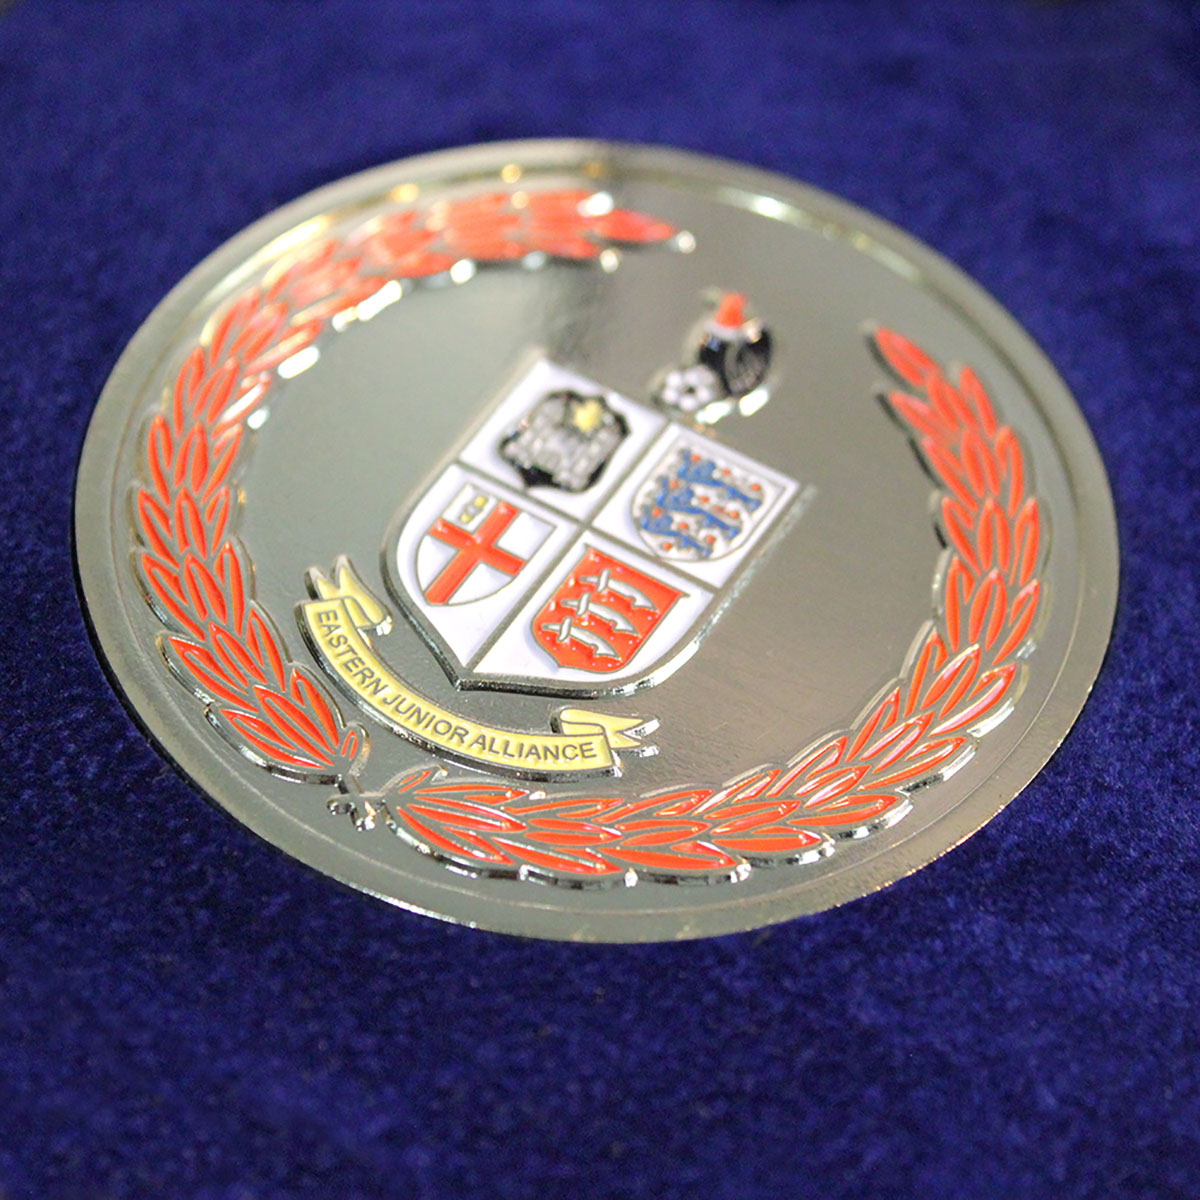 The silver enamelled Eastern Junior Alliance Football League Commemorative Medal produced by Medals UK